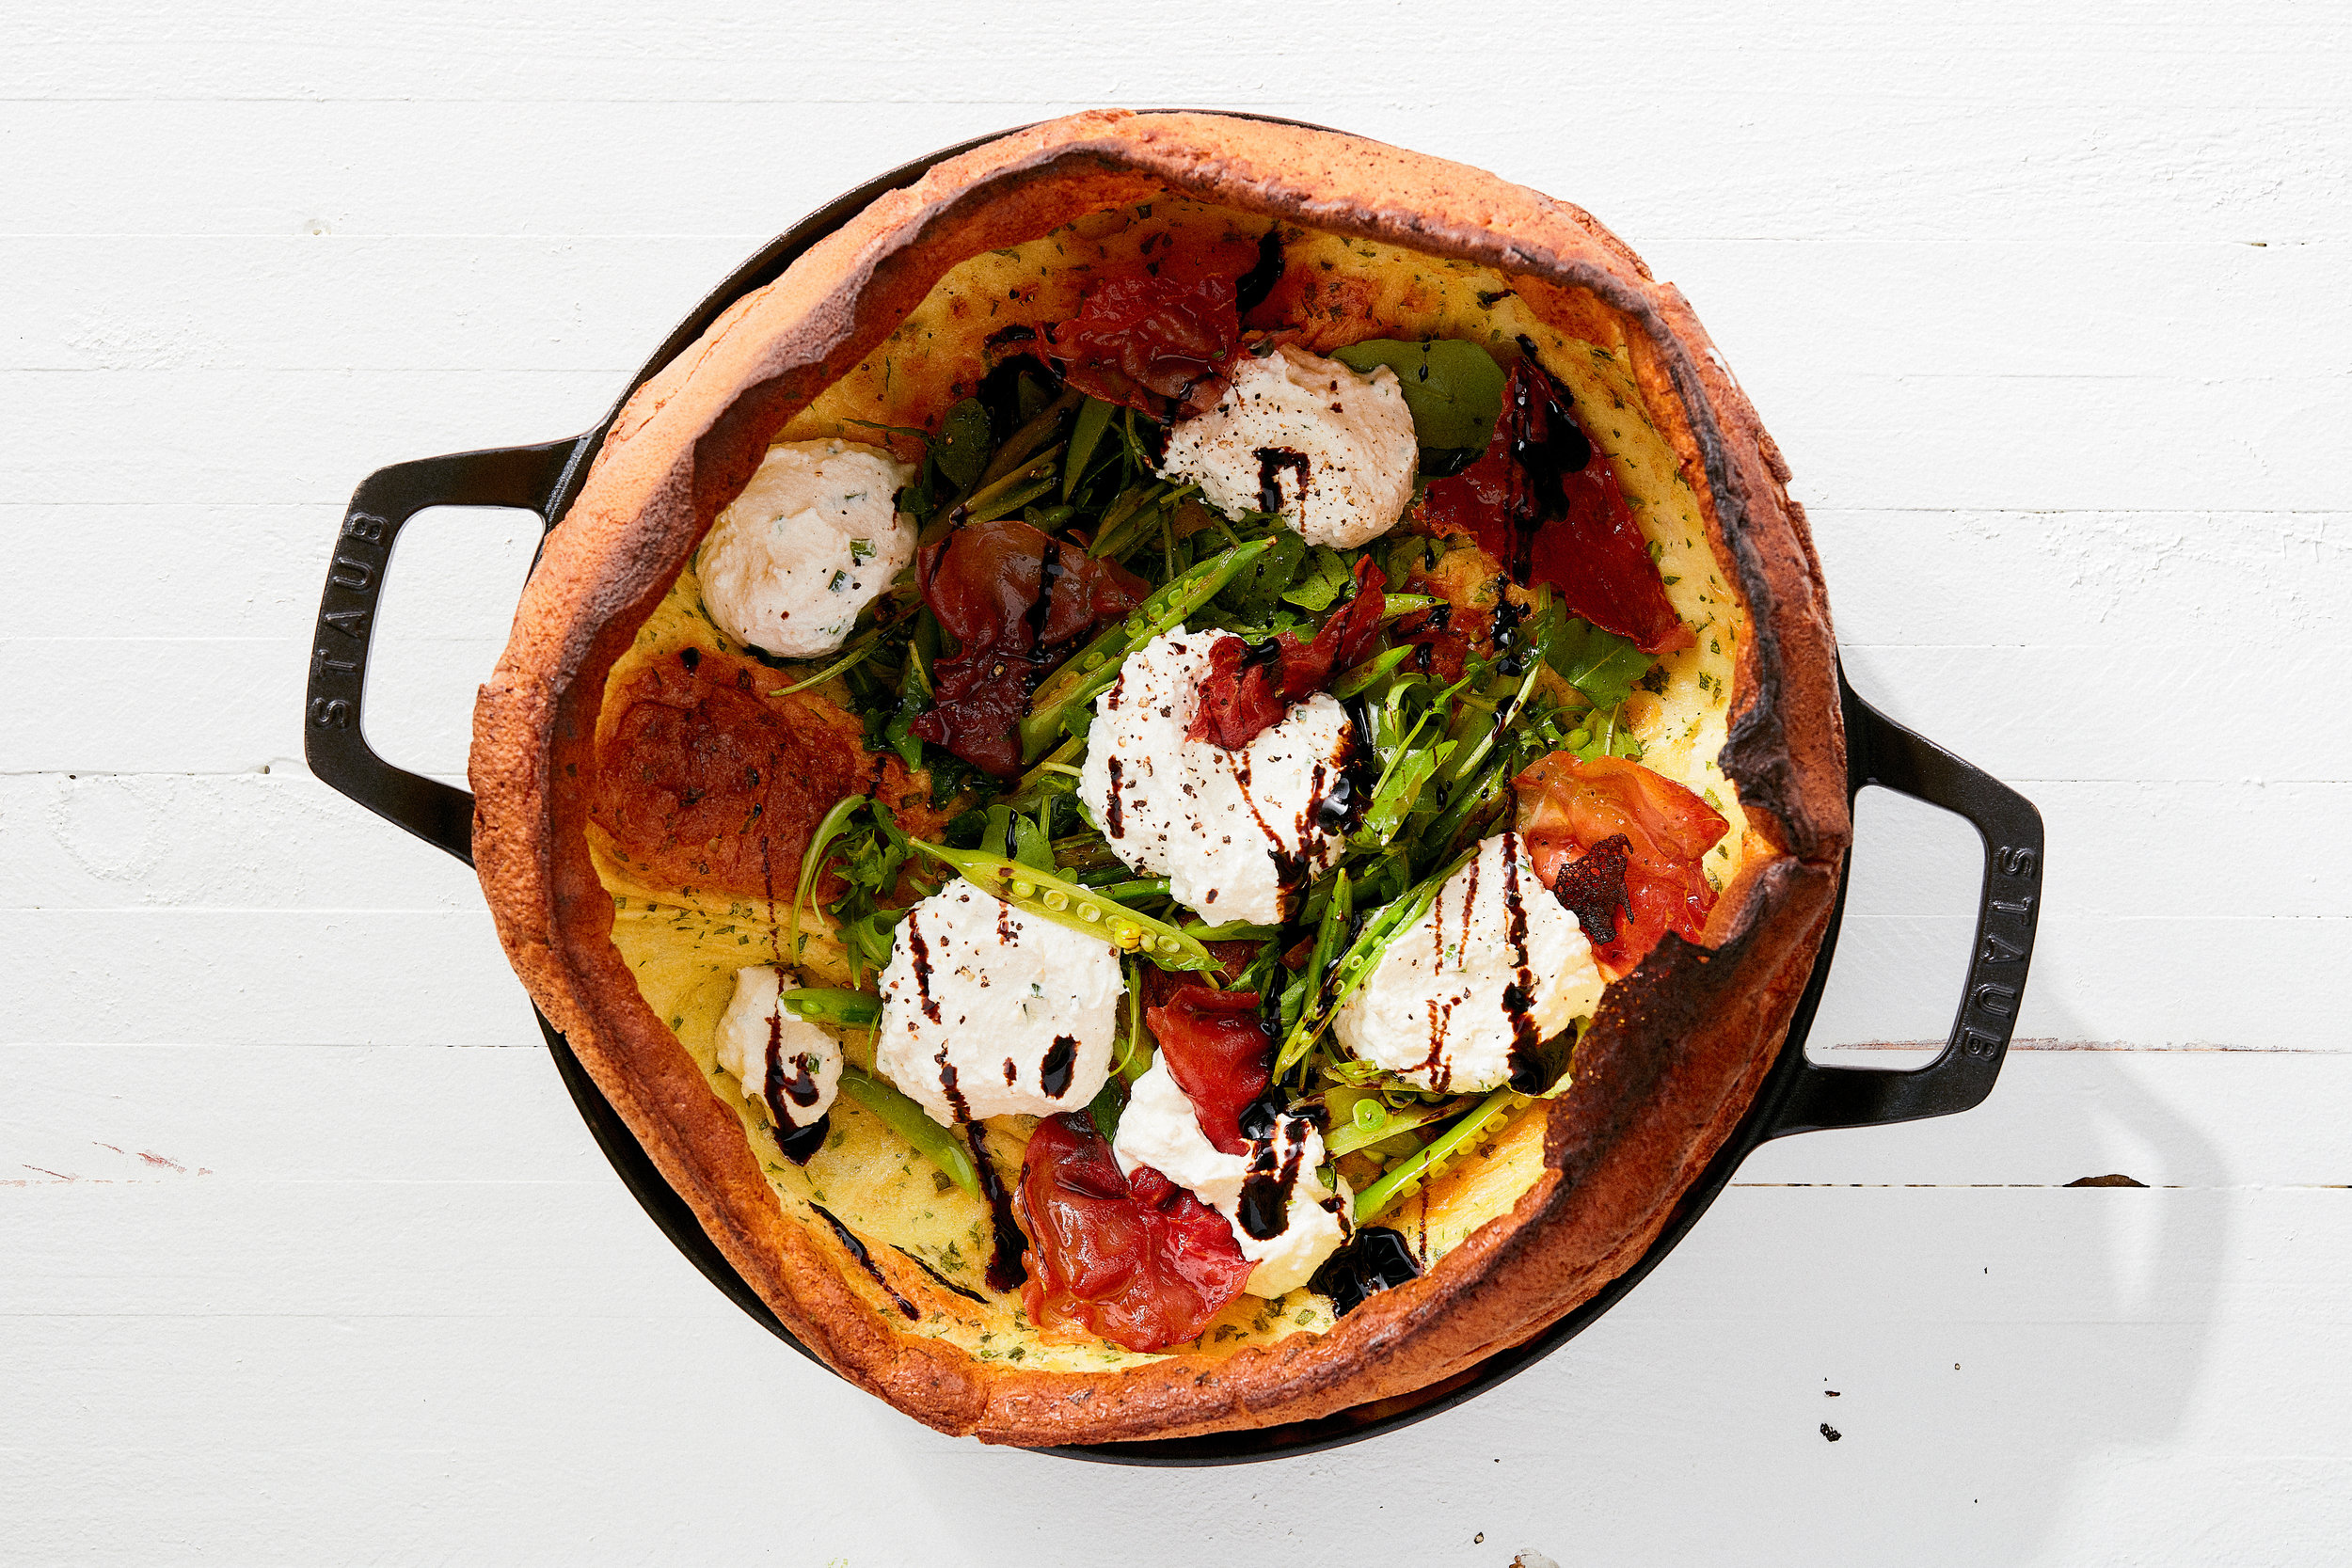 kB6iXExrQdaS4oHzn0oC_Savory_Dutch_Baby_with_Crispy_Prosciutto__Ricotta__and_Snap_Peas-0023__THUMB.jpg